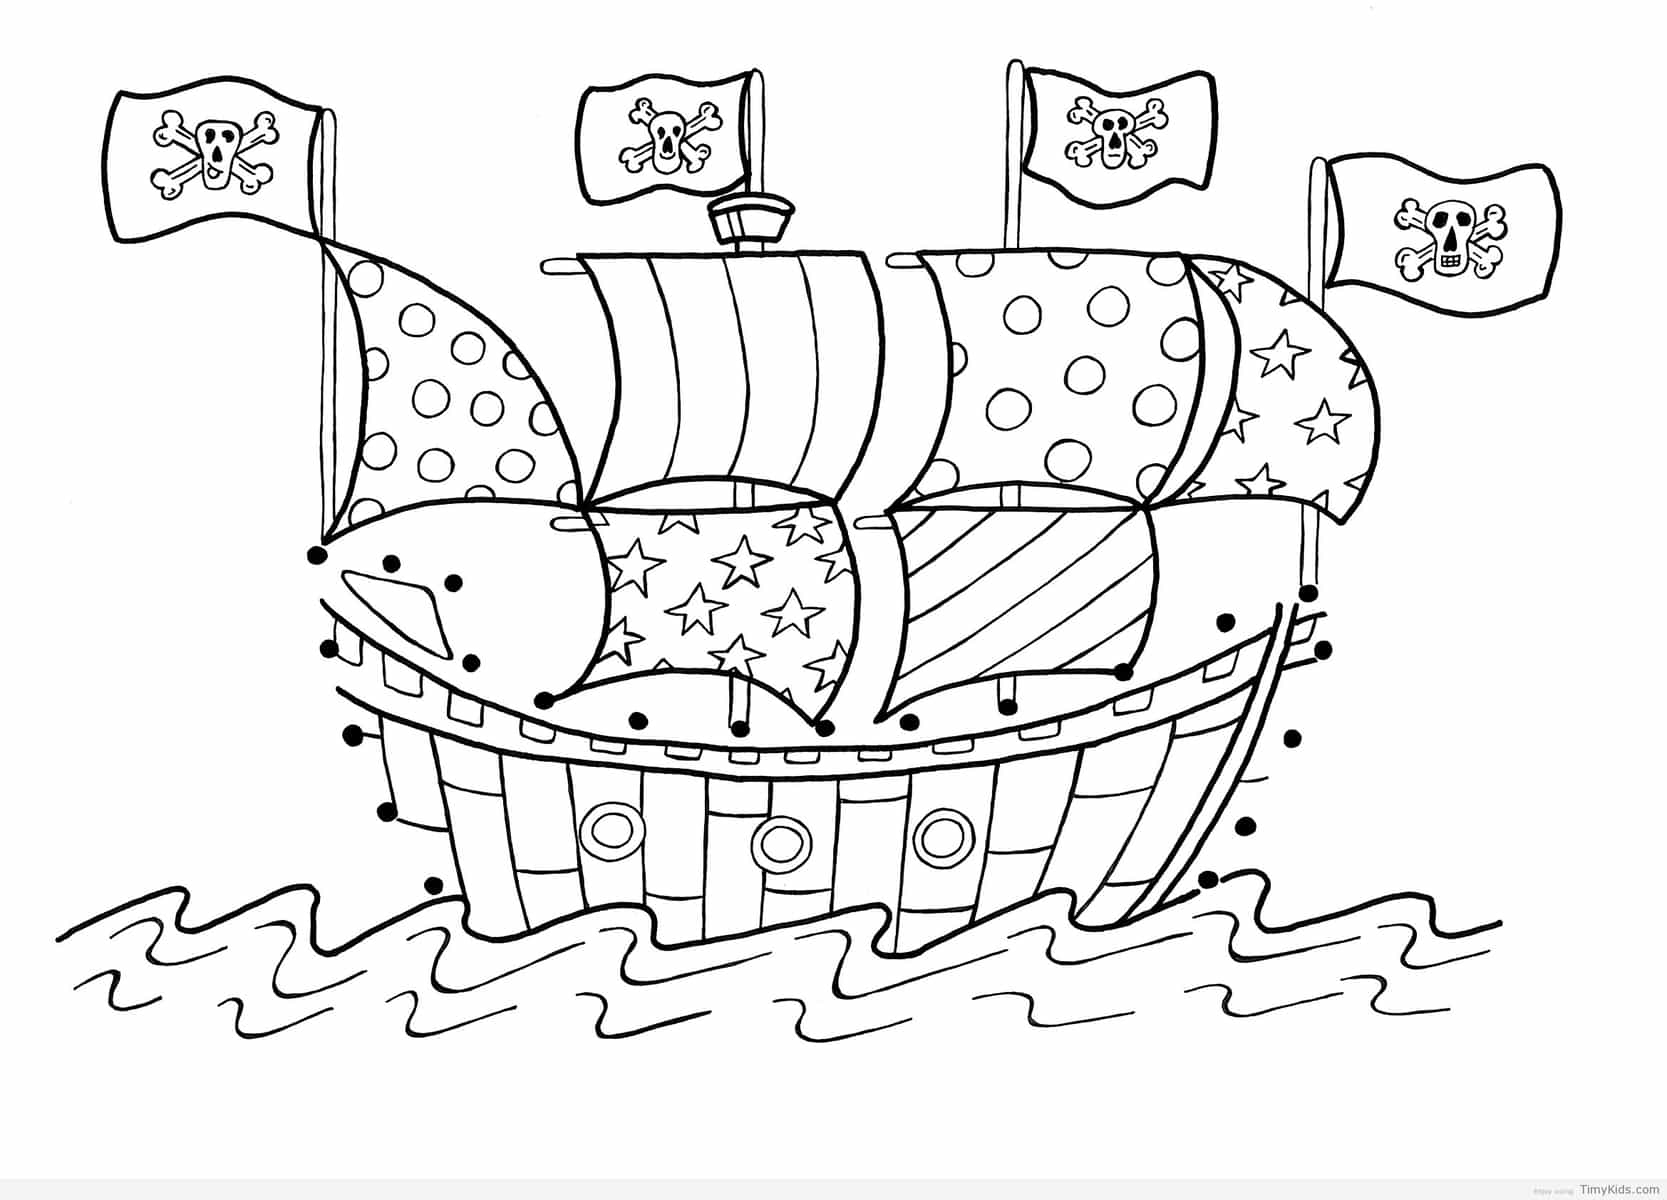 1667x1200 Cool Sportfishing Boat Coloring Picture To Print